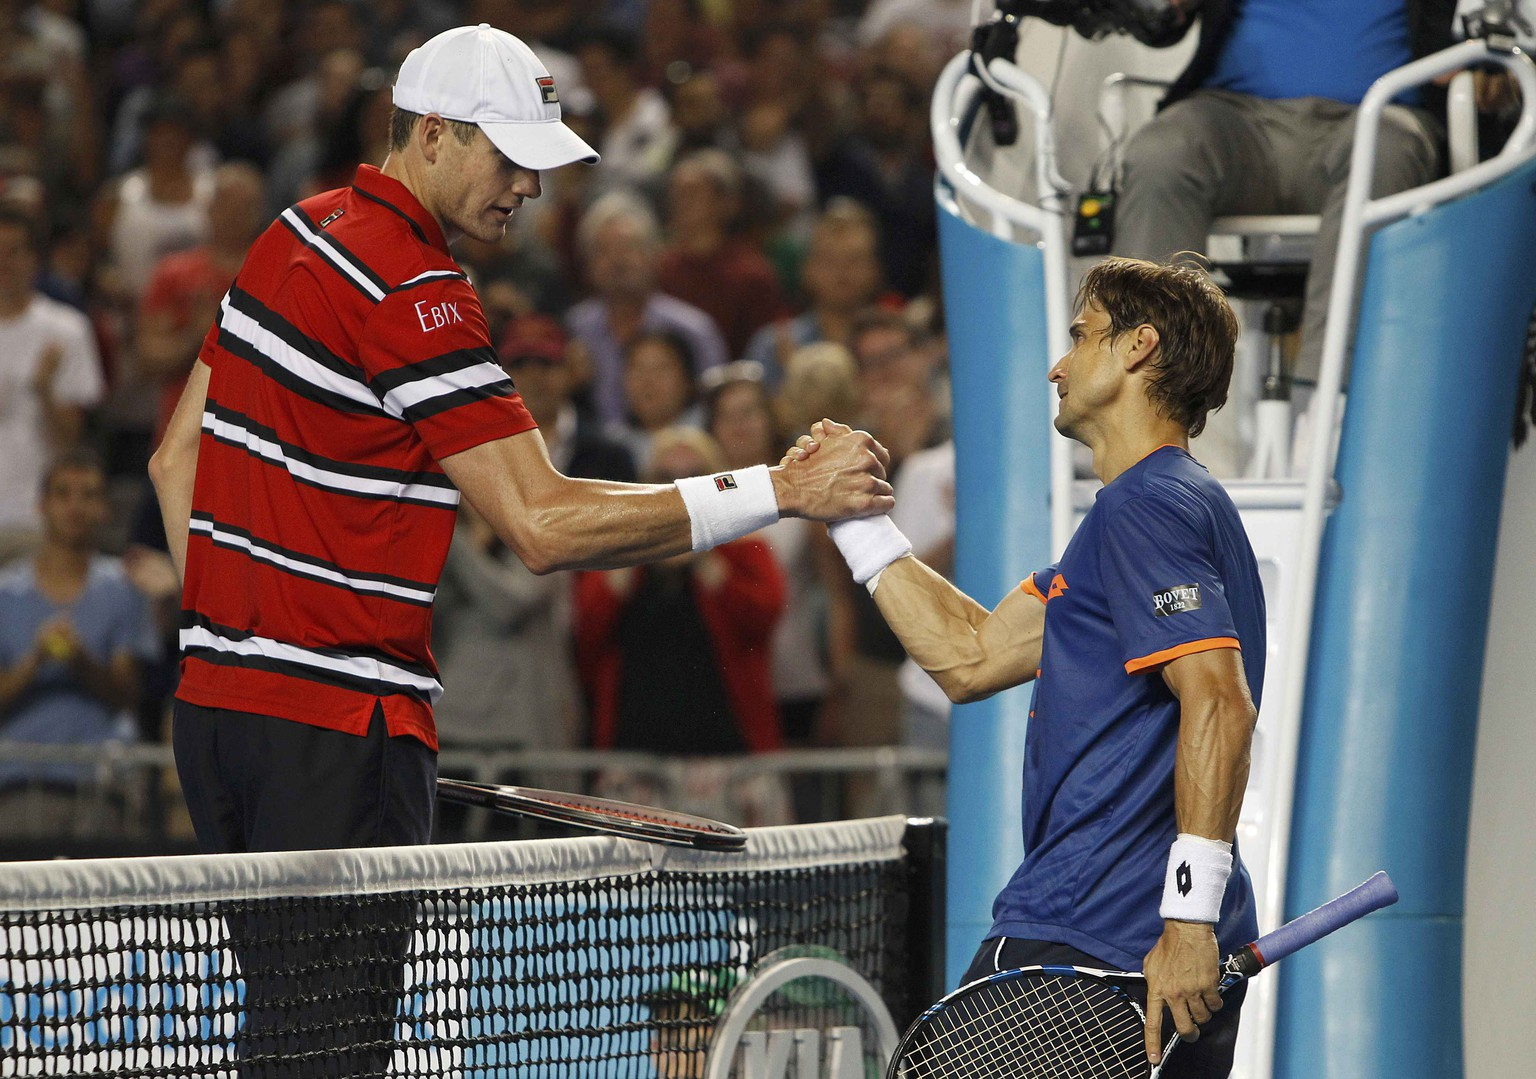 Spain's David Ferrer (R) and John Isner of the U.S. shake hands after Ferrer won their fourth round match at the Australian Open tennis tournament at Melbourne Park, Australia, January 25, 2016. REUTERS/Brandon Malone       TPX IMAGES OF THE DAY